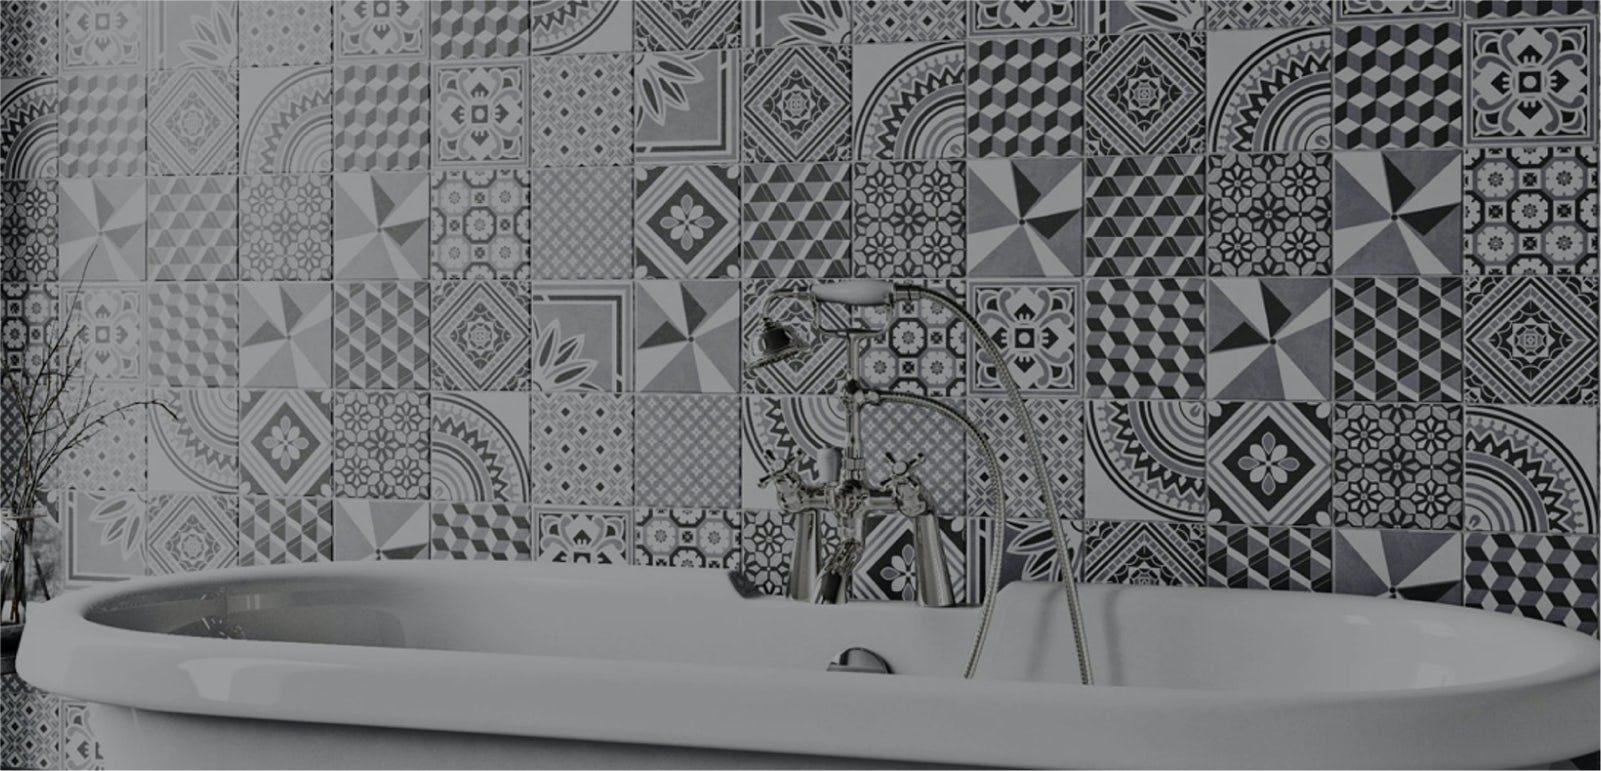 Celebrating National Tile Week with the new Ted Baker tile collection